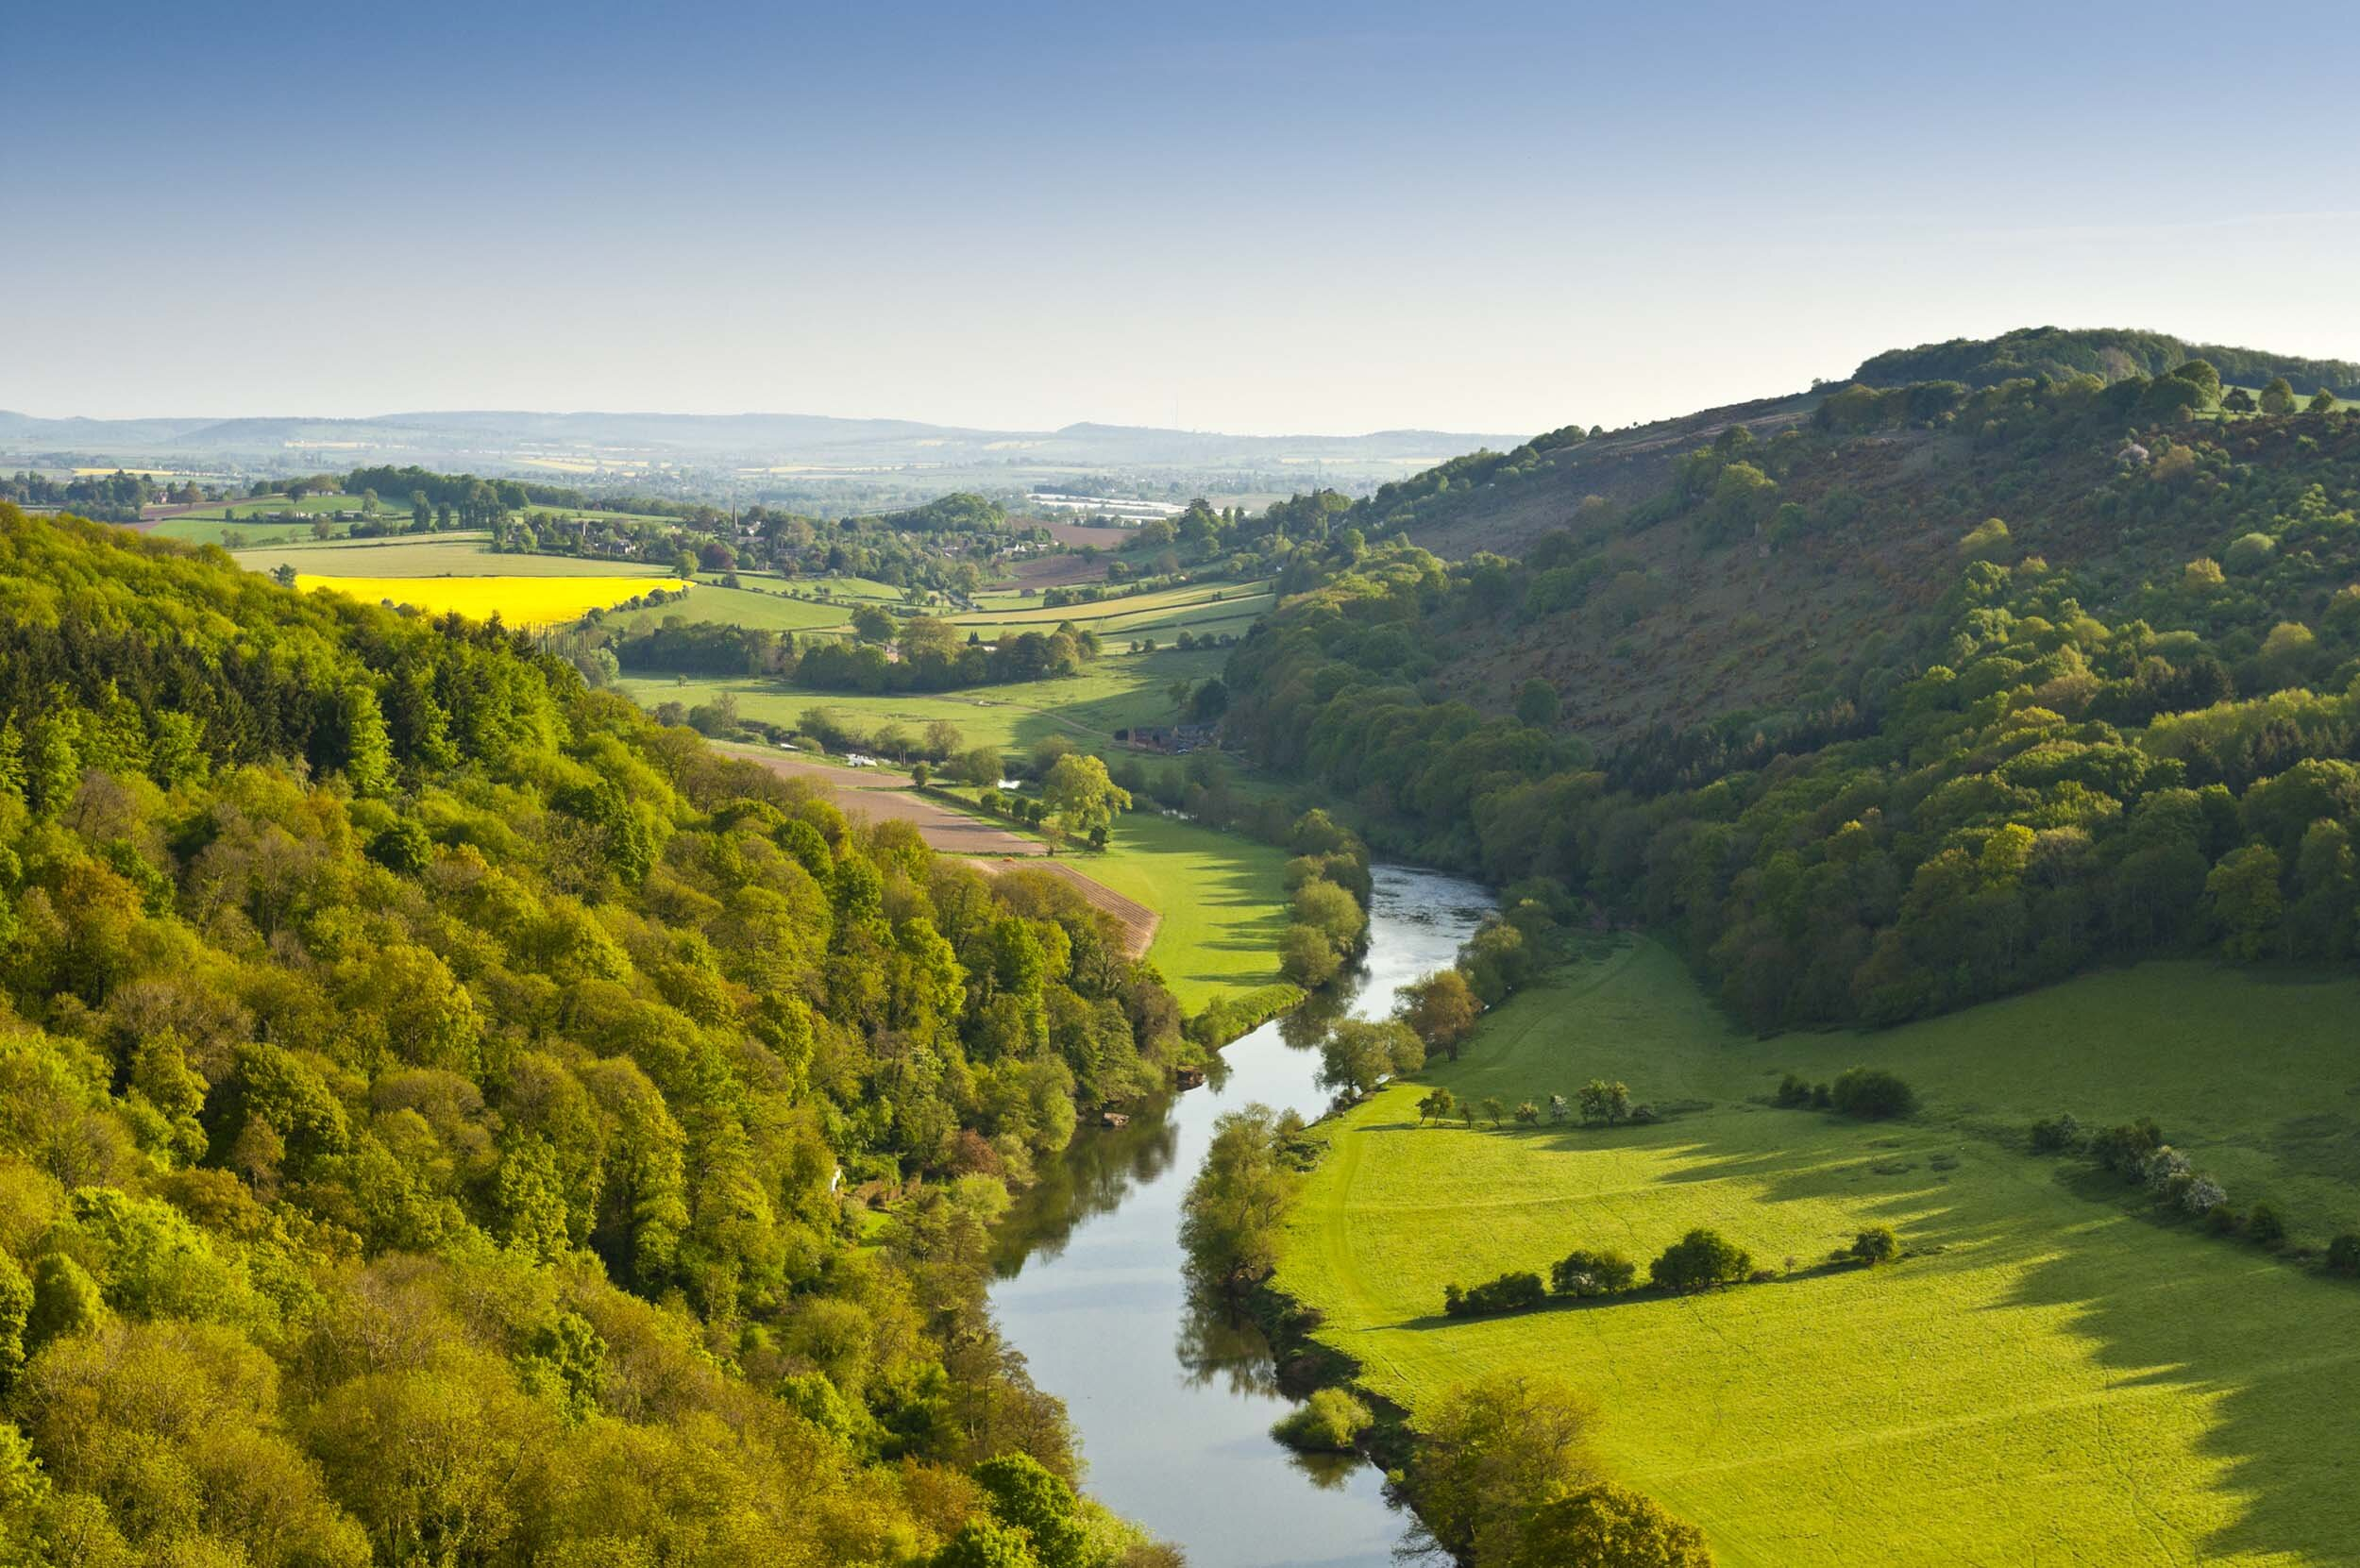 The beautiful Wye Valley!